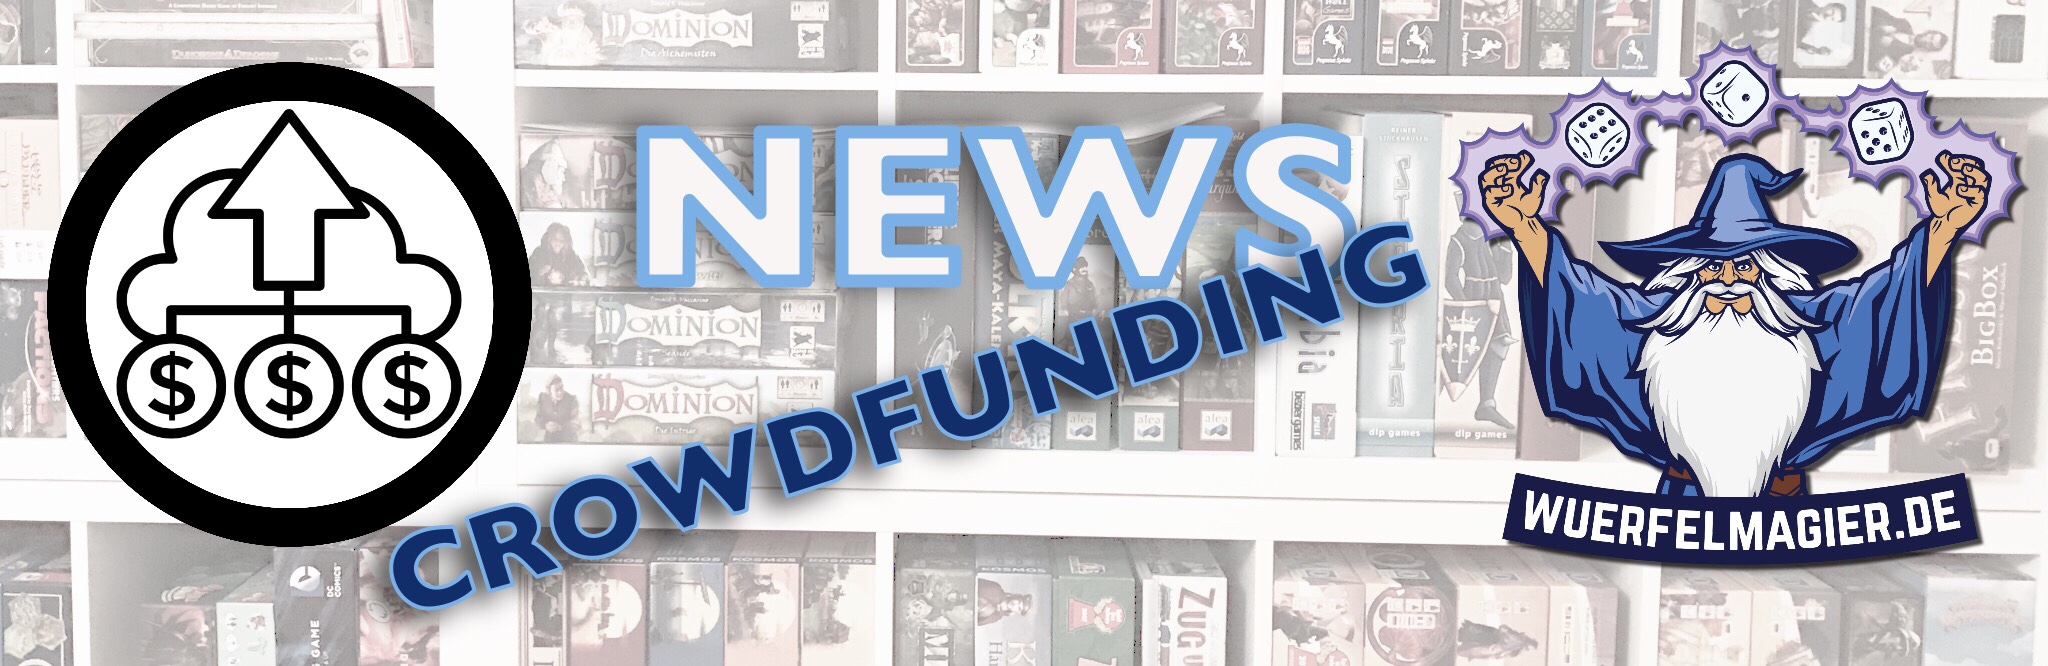 News Crowdfunding